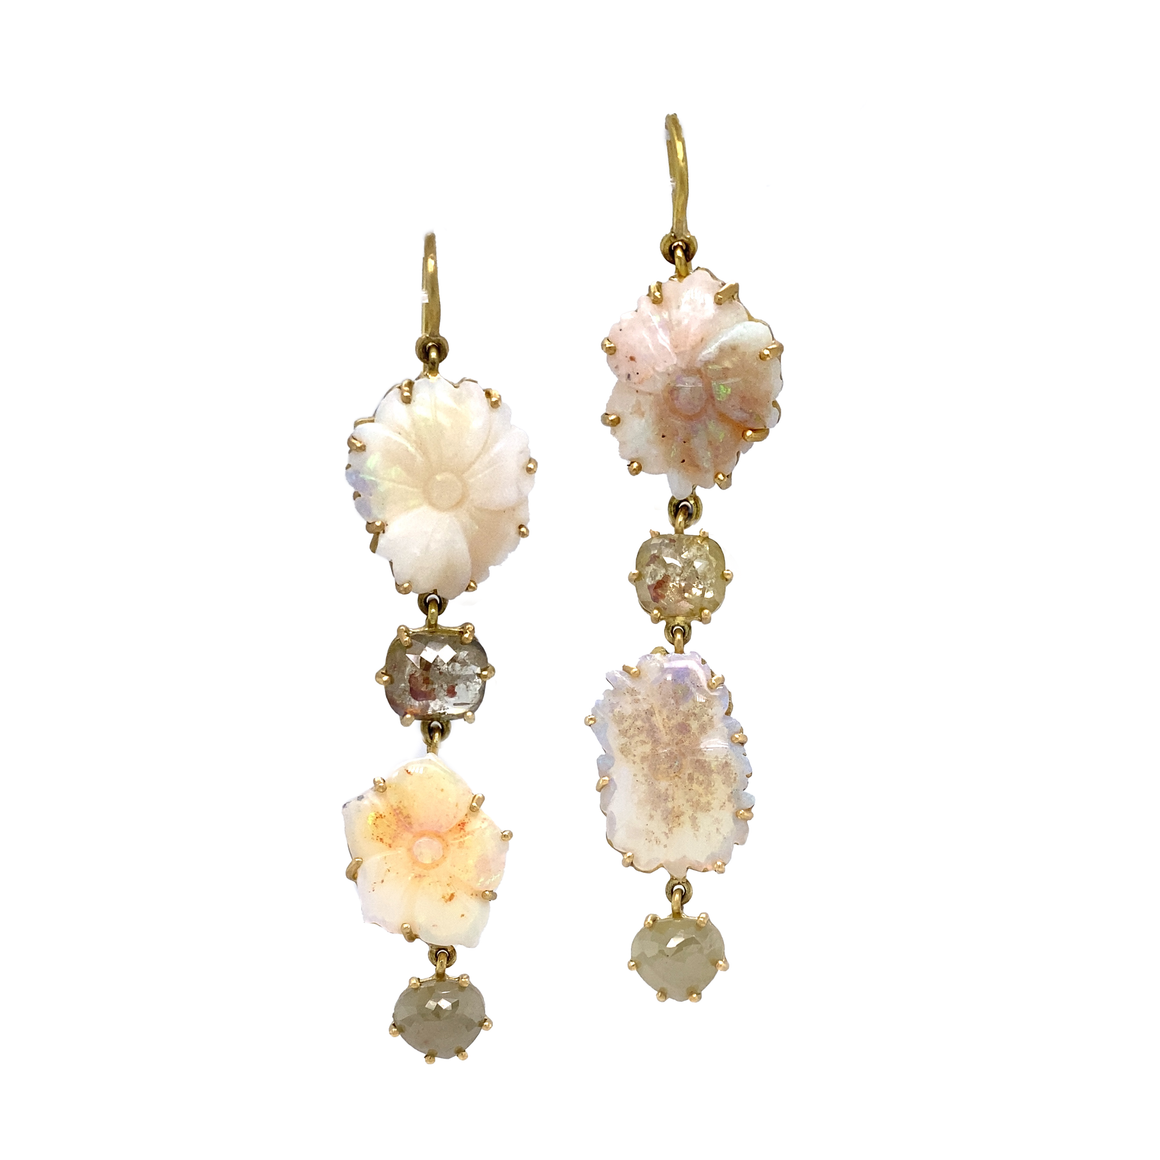 Double Carved Opal Flower Earrings - Lesley Ann Jewels